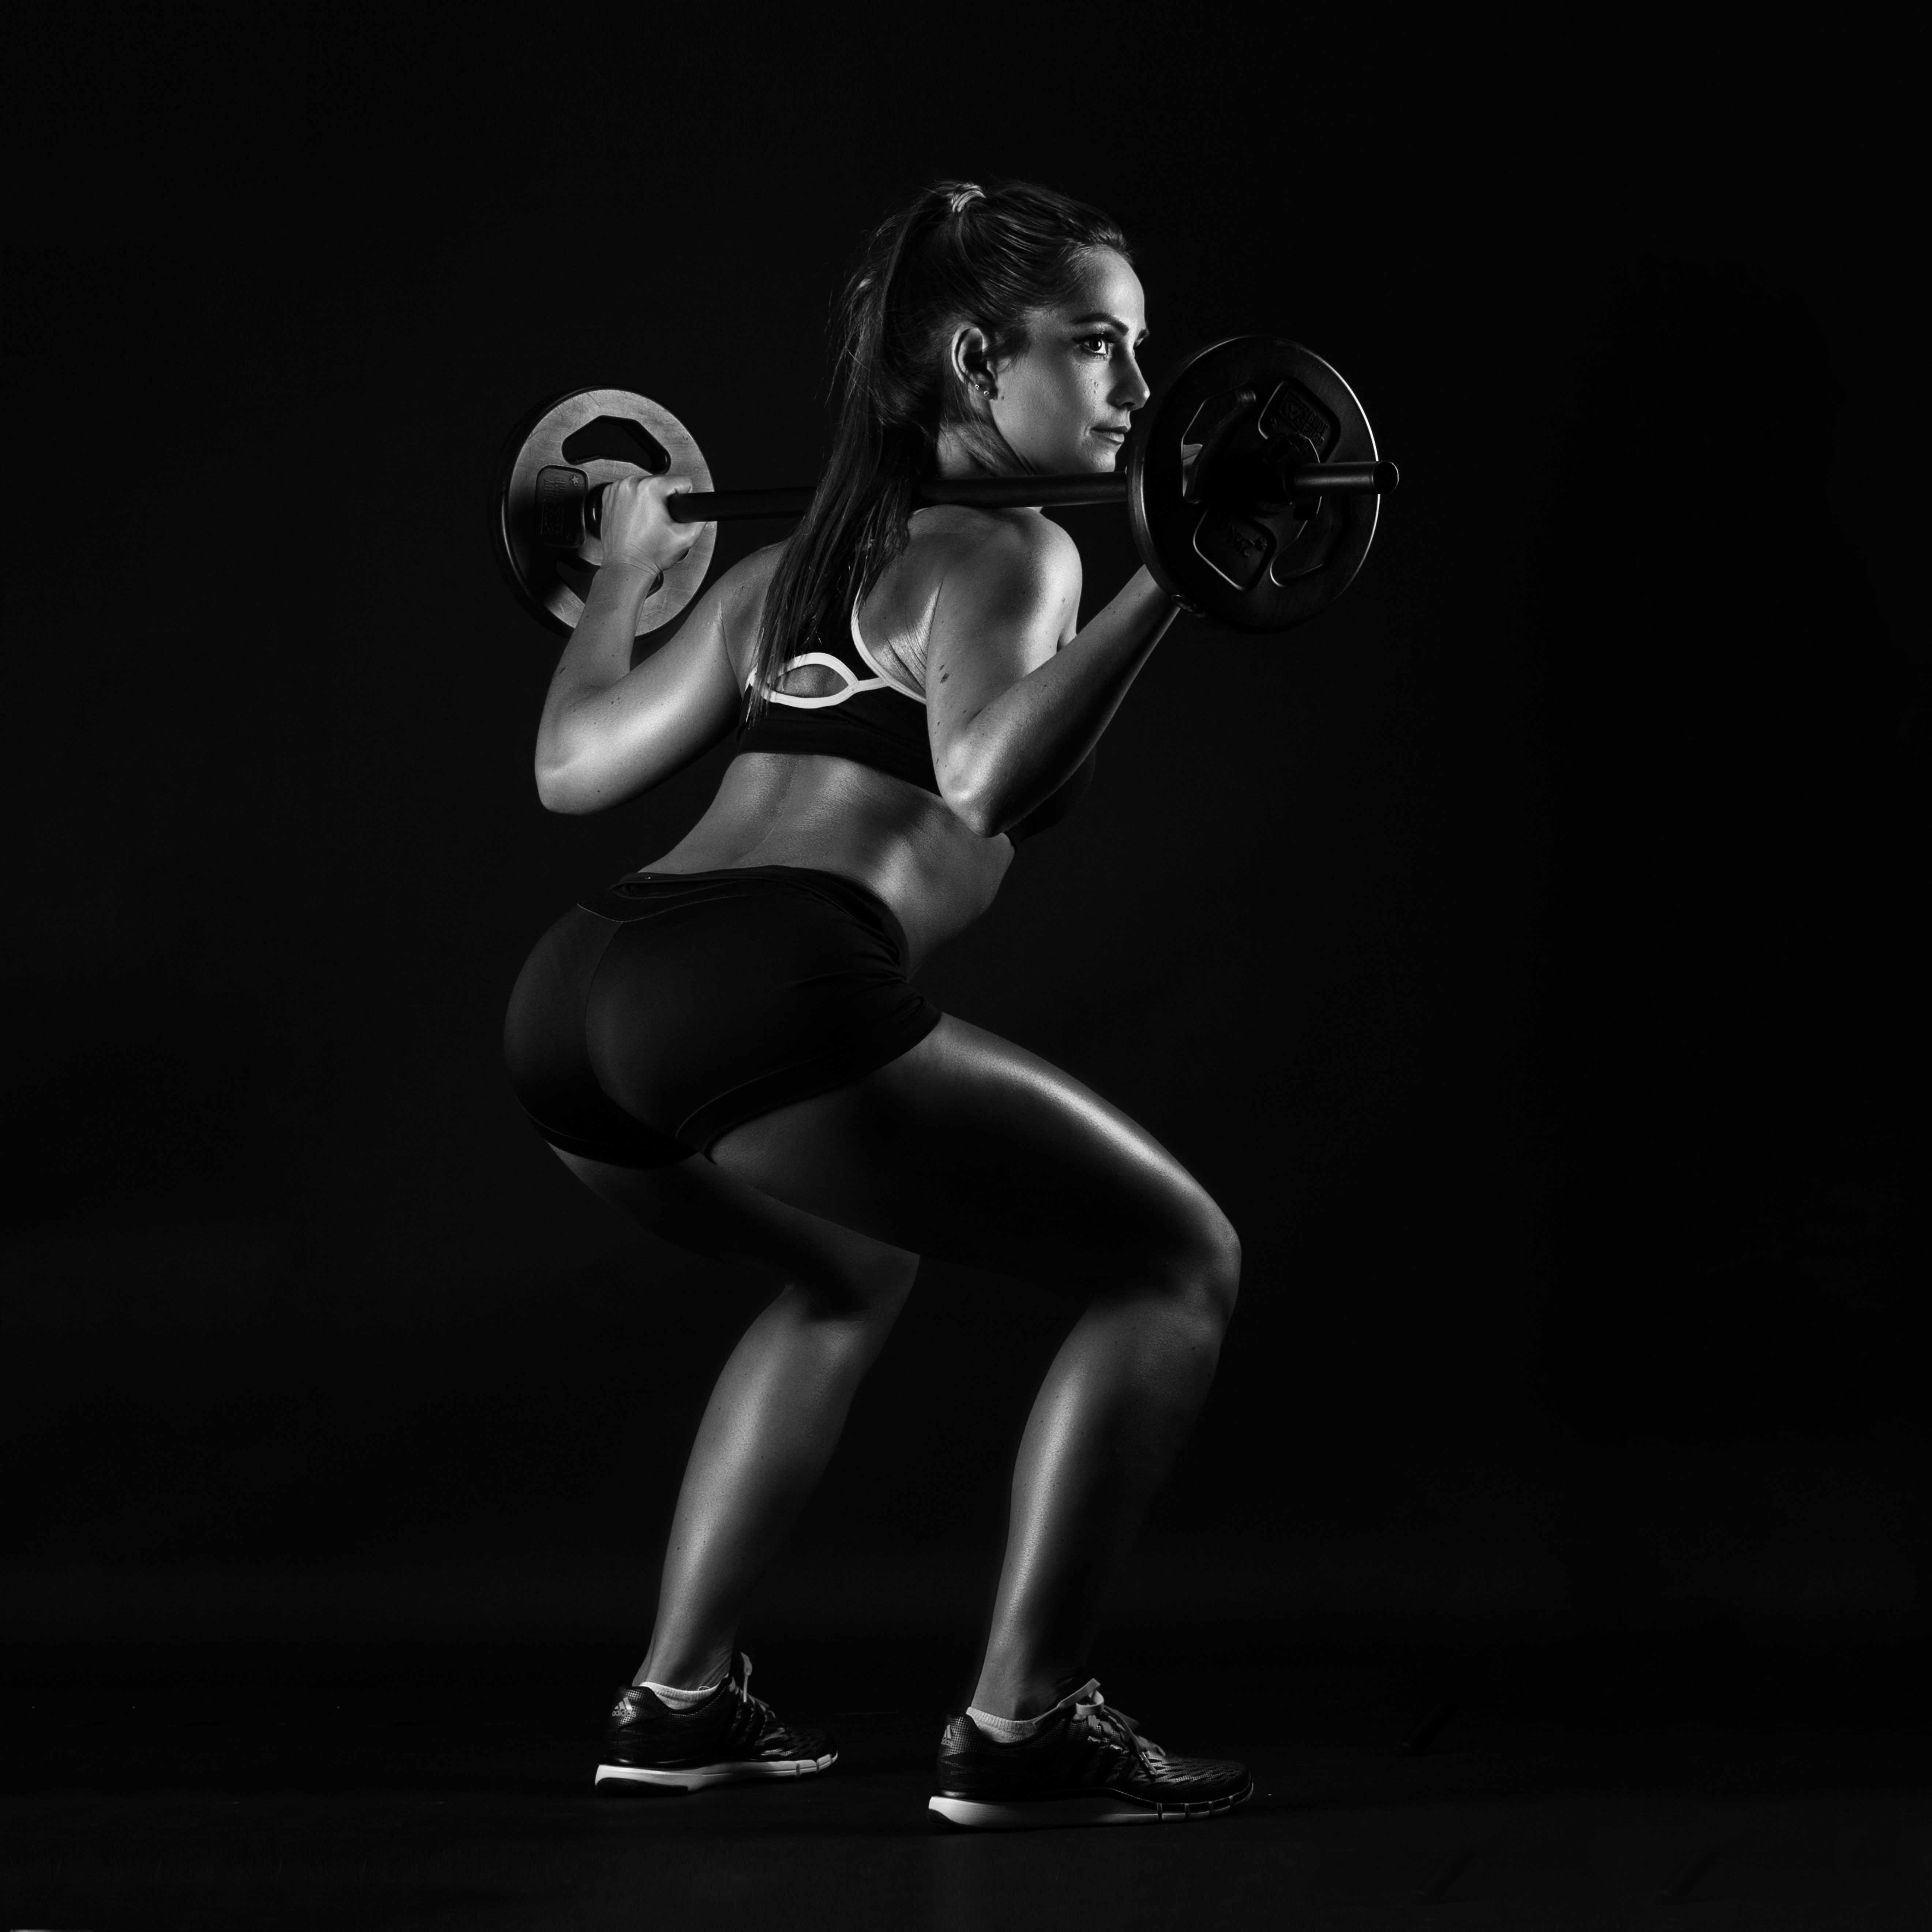 Green Sports Fitness, Portrait 3.jpg